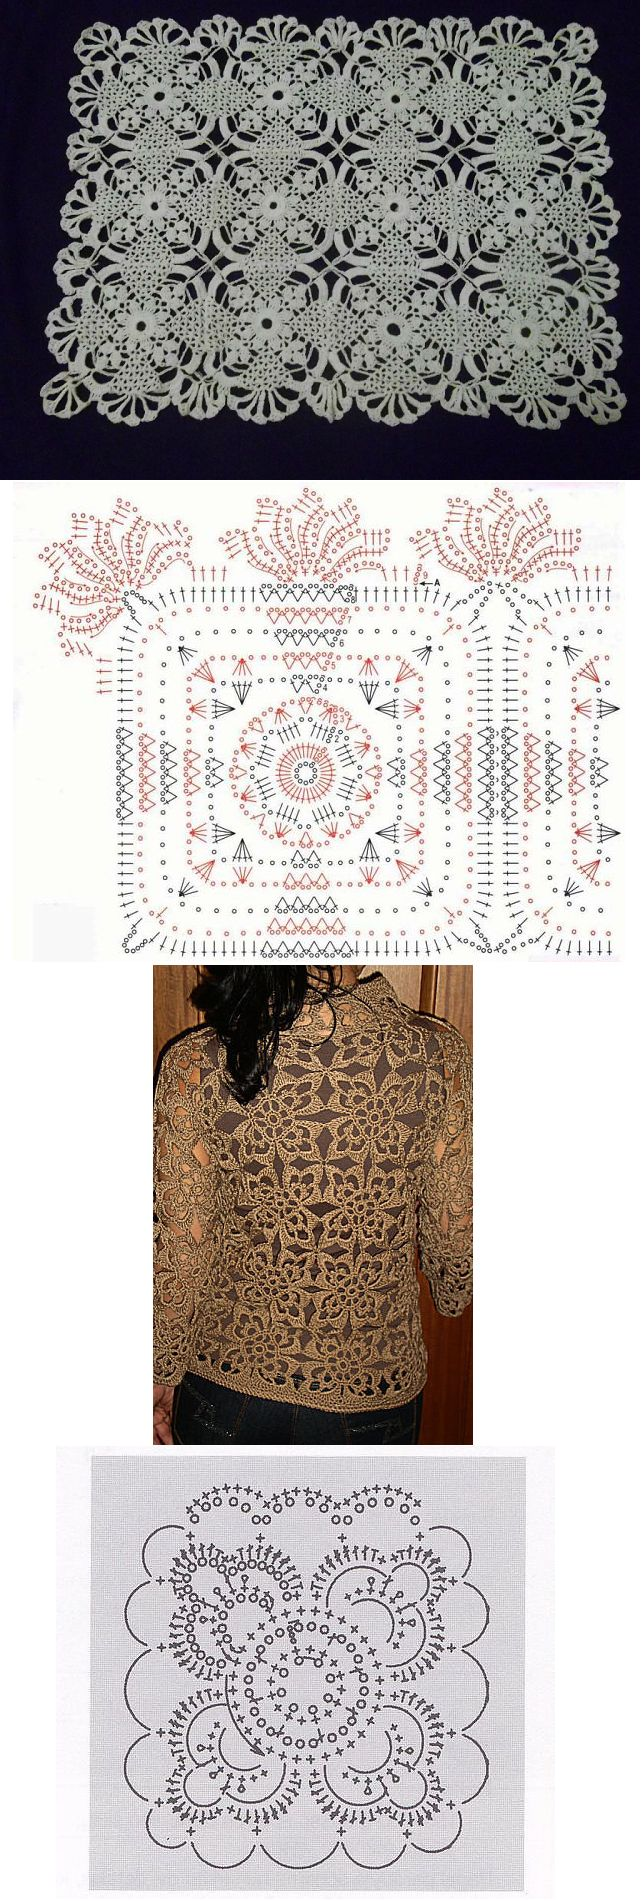 lacy crochet motifs - these are quite pretty!